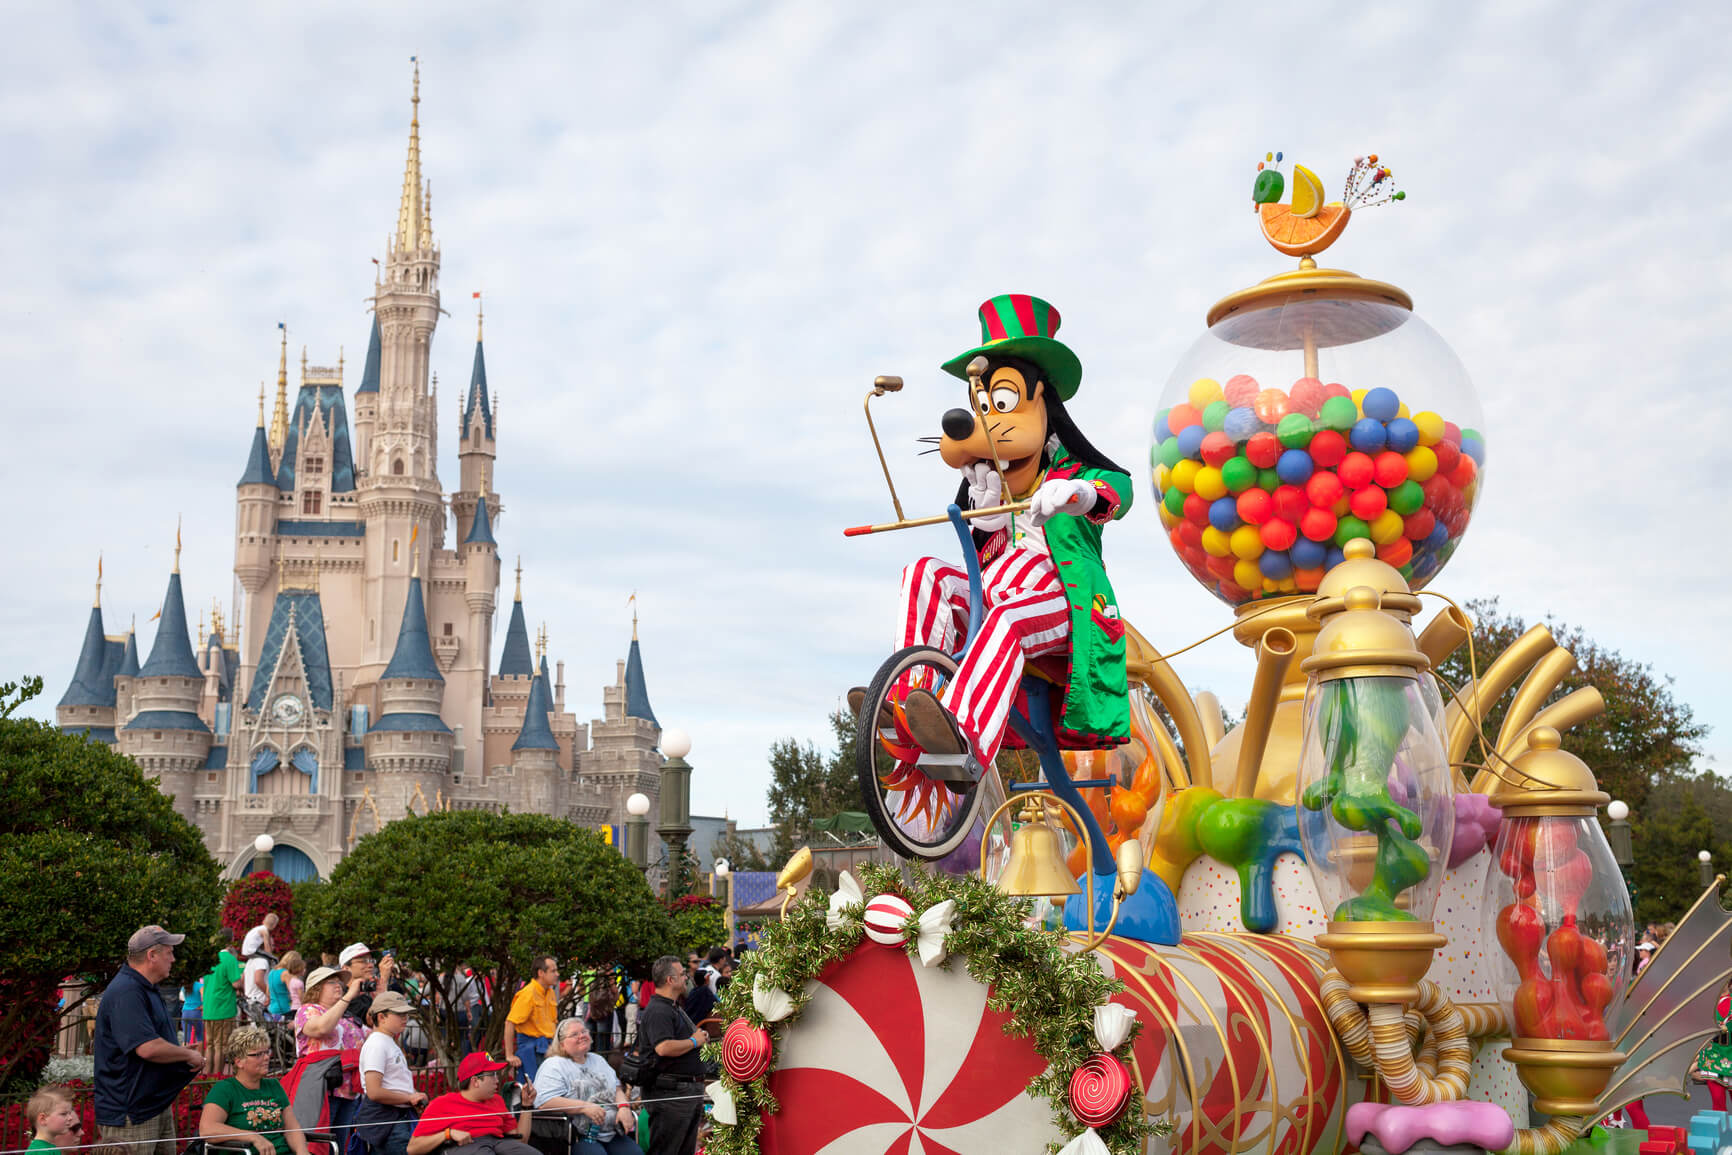 Rio de Janeiro, Brazil to Orlando, Florida for only $341 USD roundtrip (Aug-Oct dates)